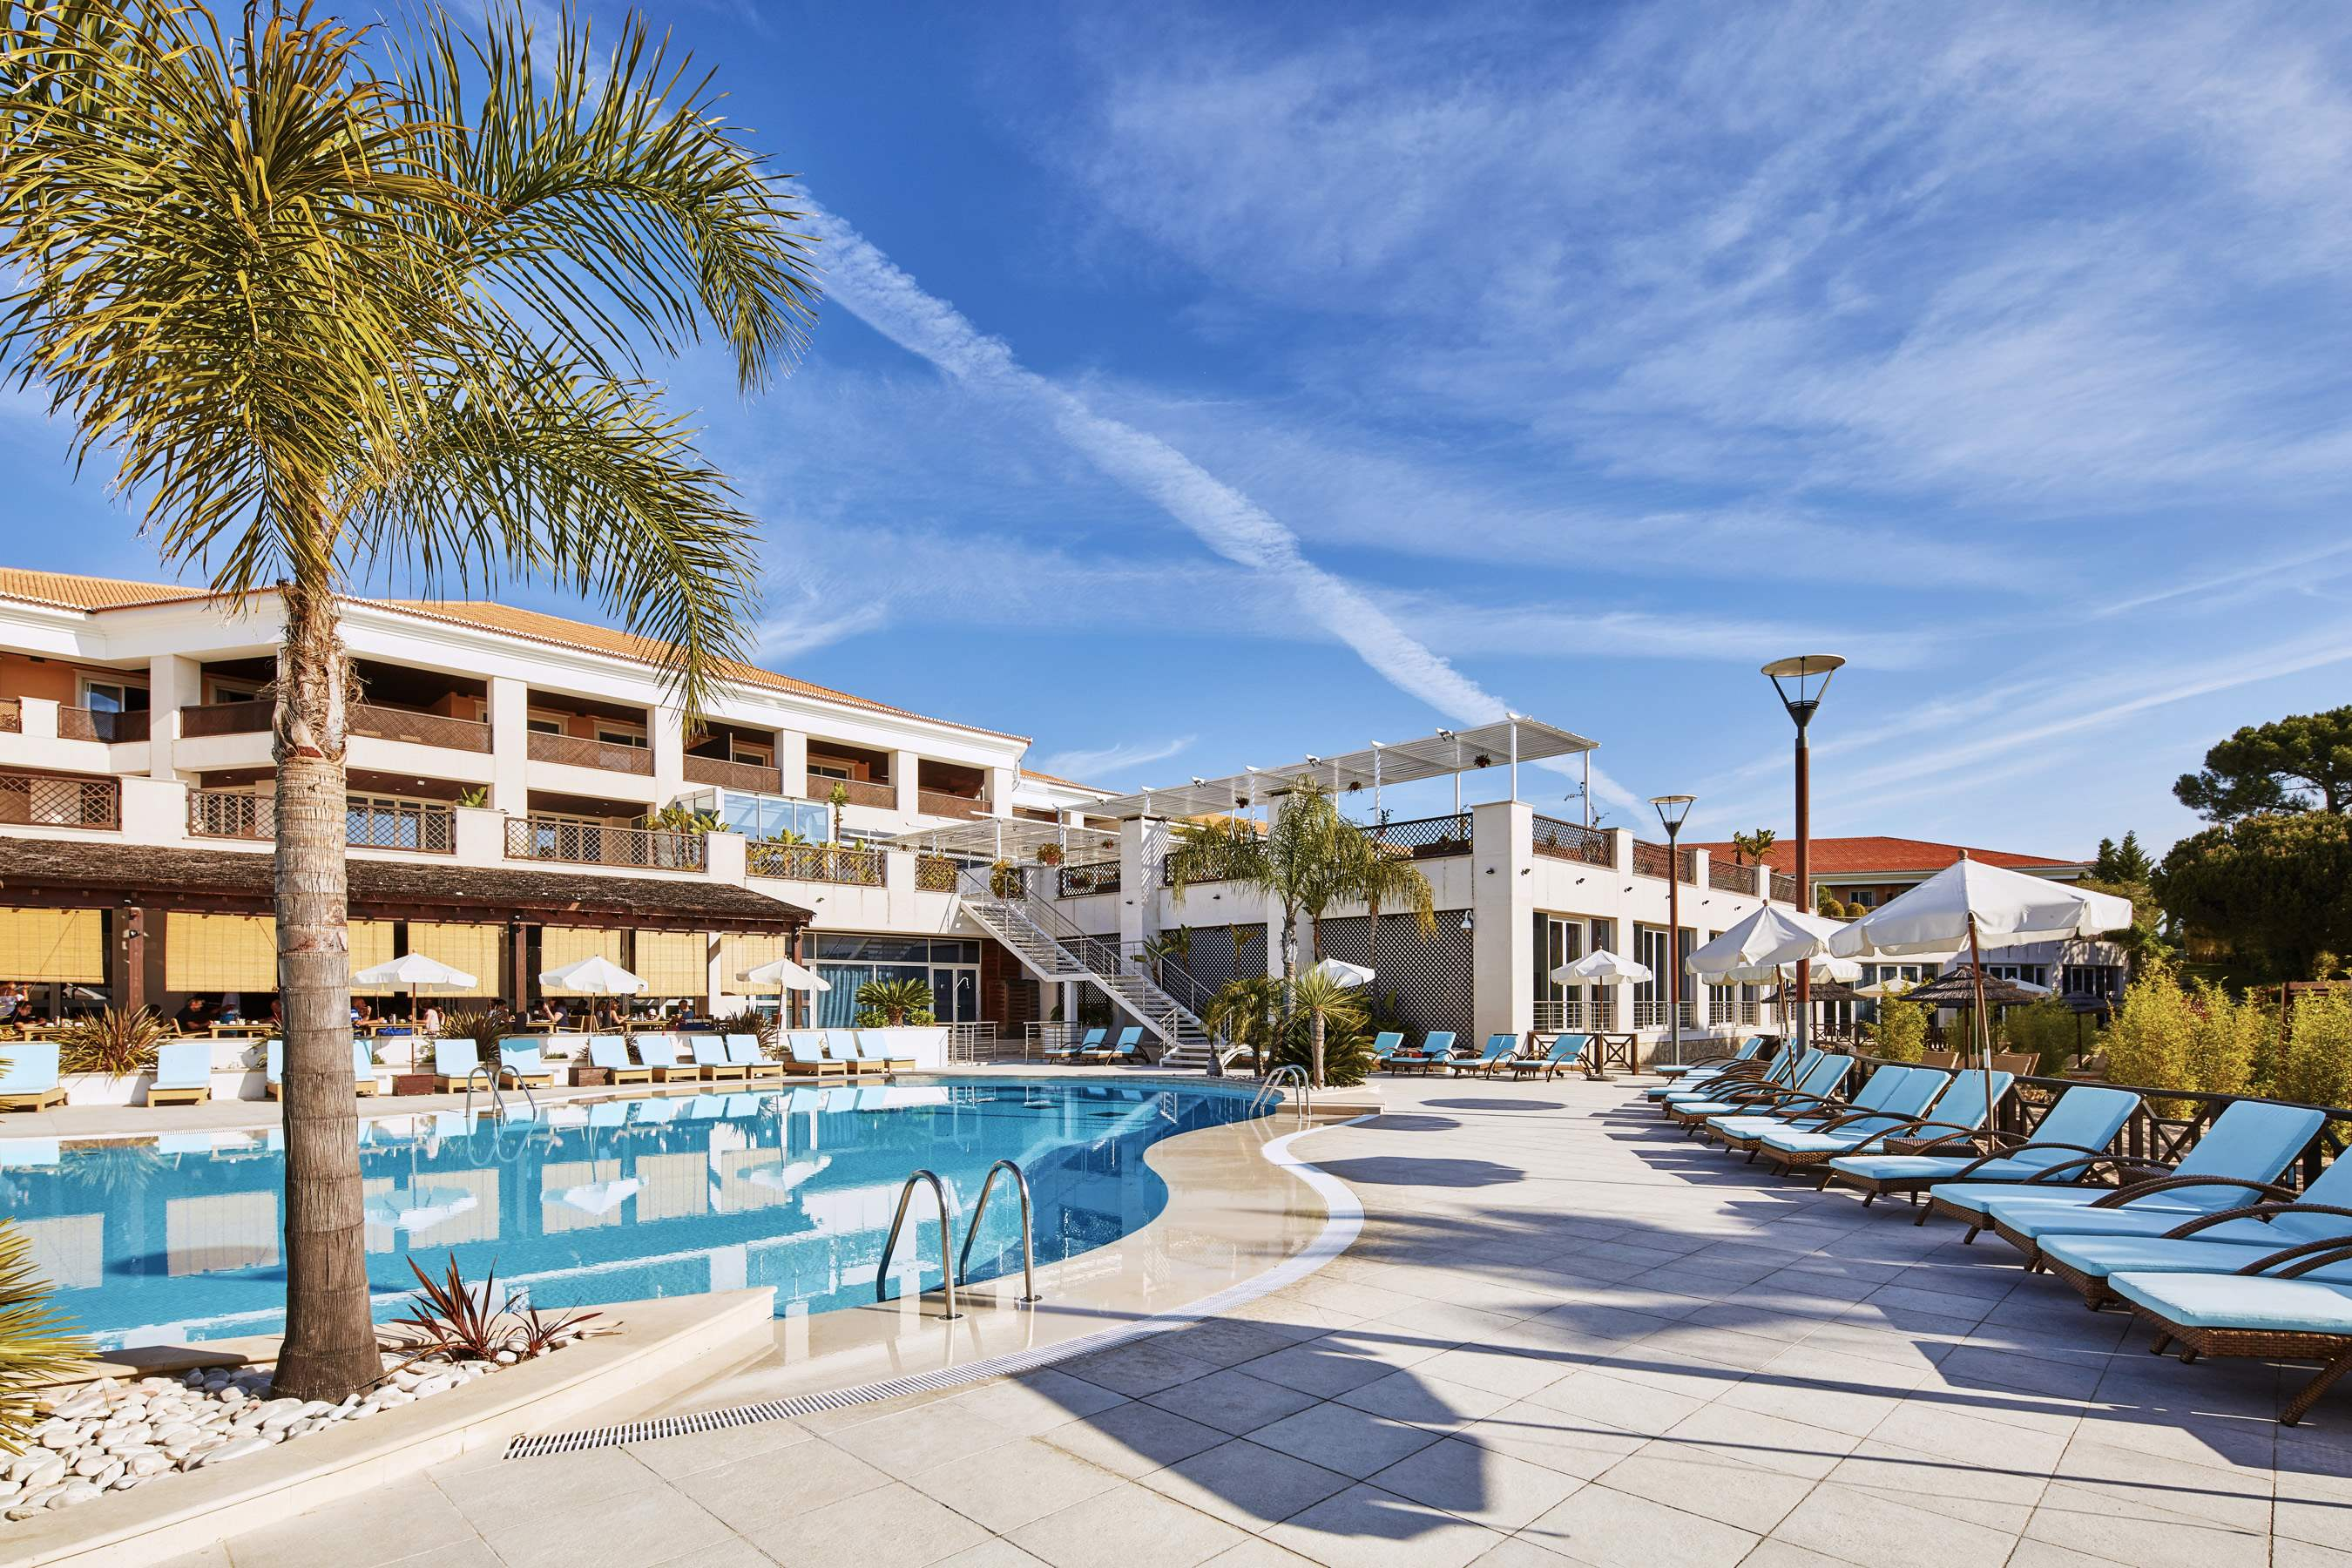 Wyndham Grand Algarve 1 Bedroom, Deluxe Suite, Pool Side ,Room Only , 1 bedroom apartment in Wyndham Grand Algarve, Algarve Photo #1